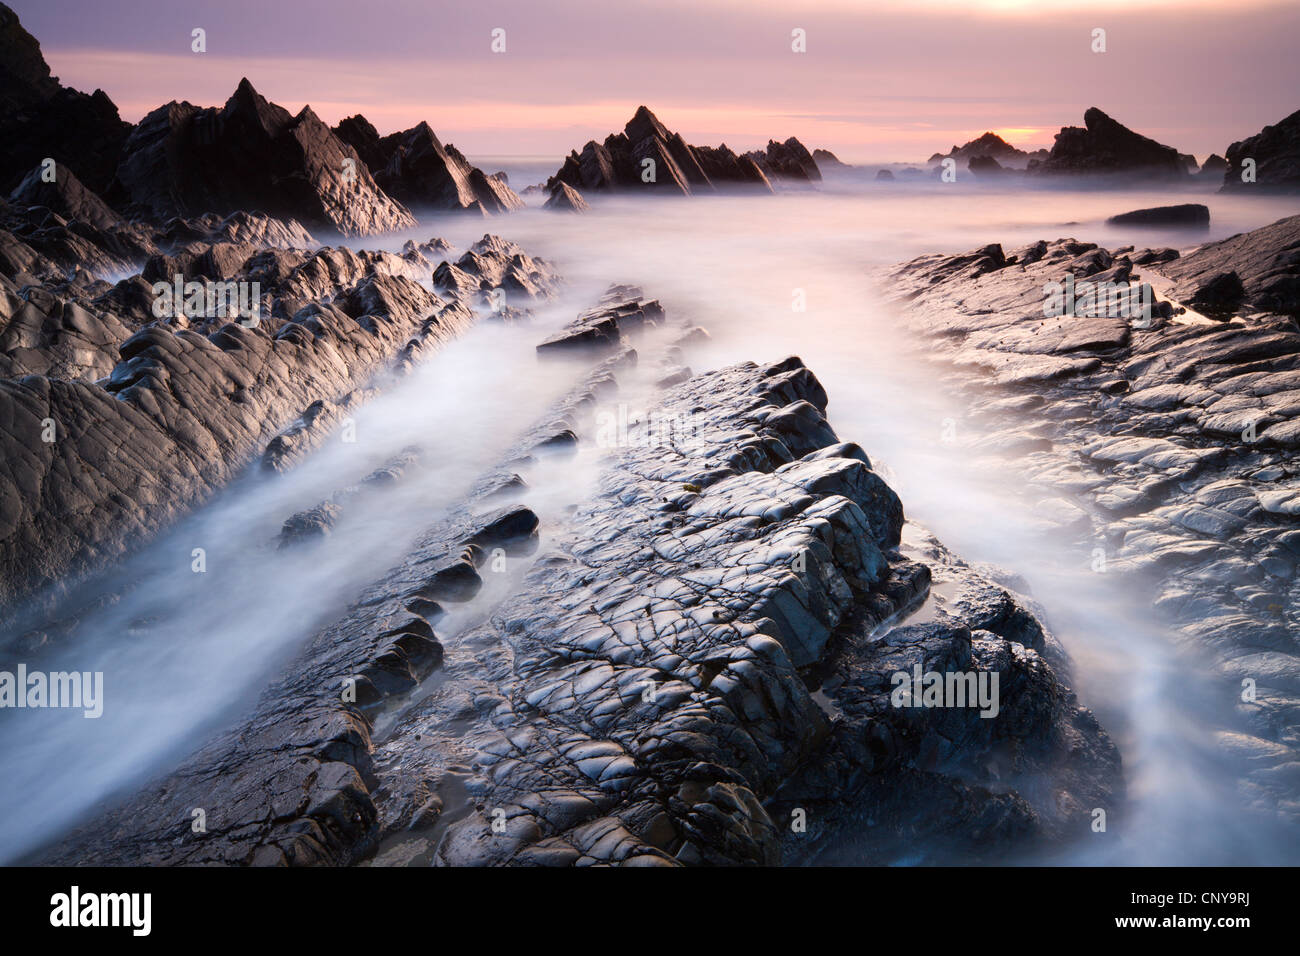 Dramatic coastal scenery at sunset, Hartland Quay, Devon, England. Spring (April) 2010. - Stock Image